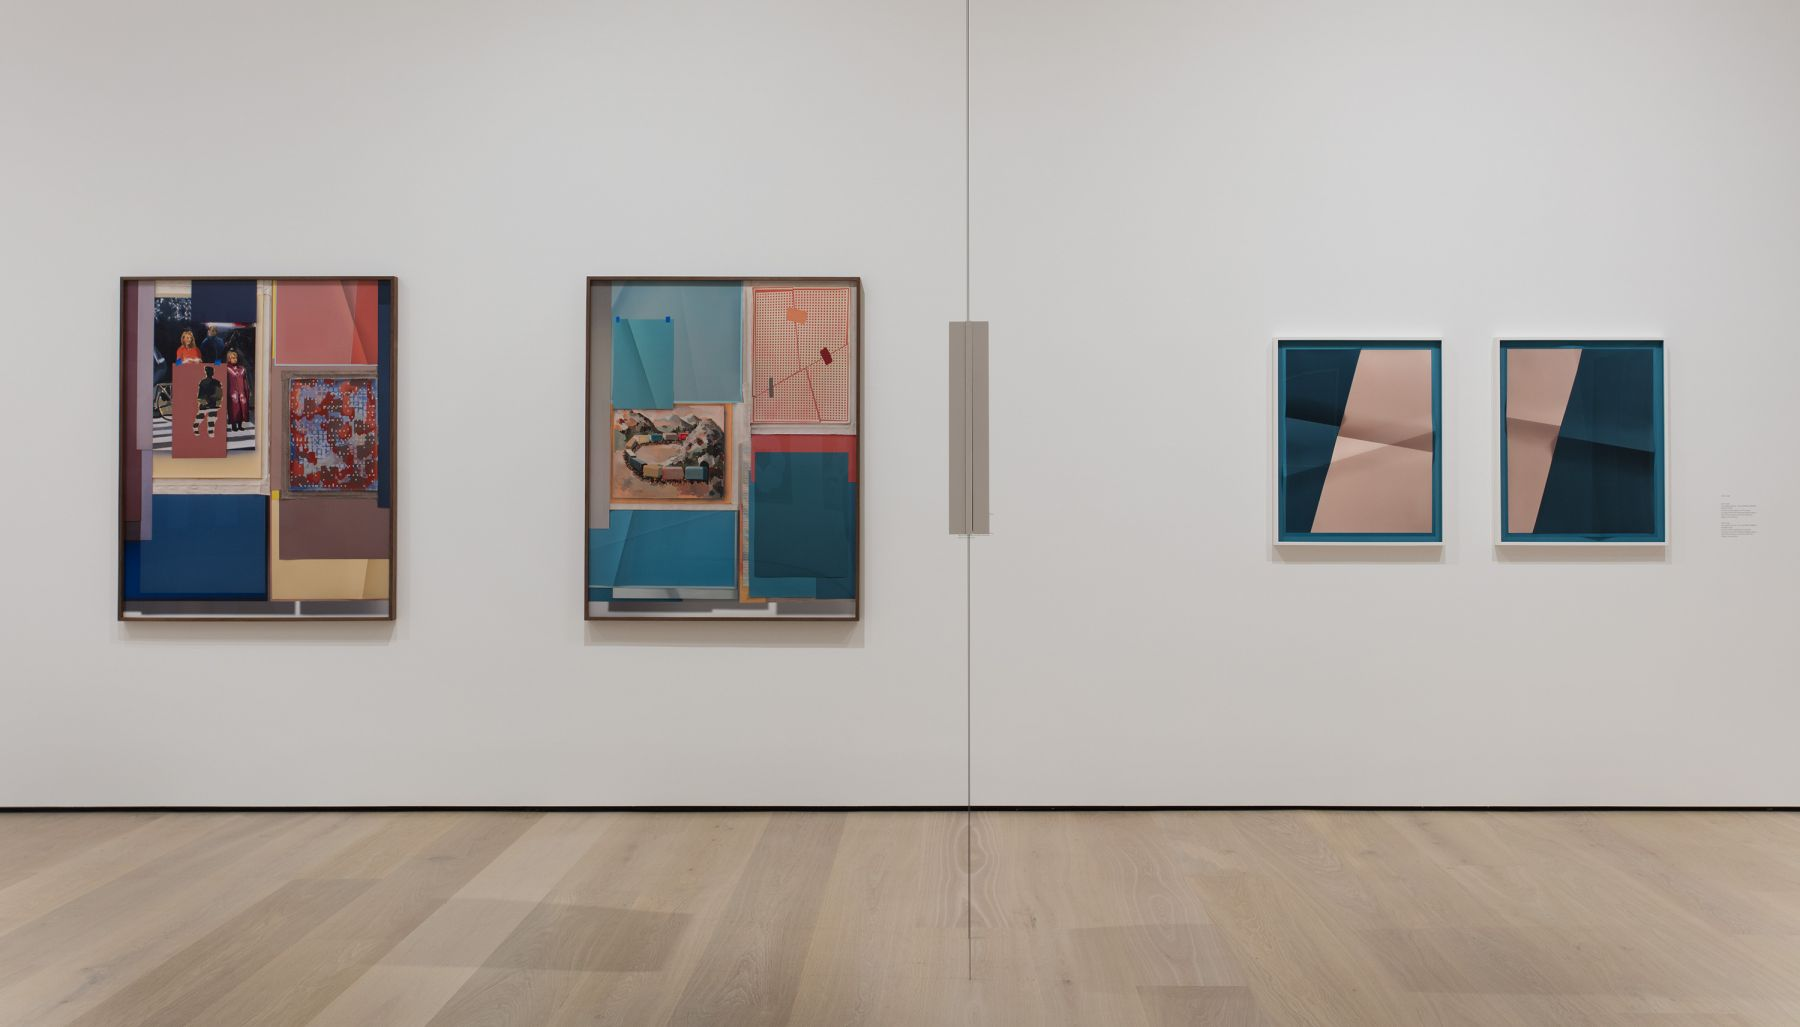 Exhibition of John Houck's prints at the Hammer Museum in Los Angeles